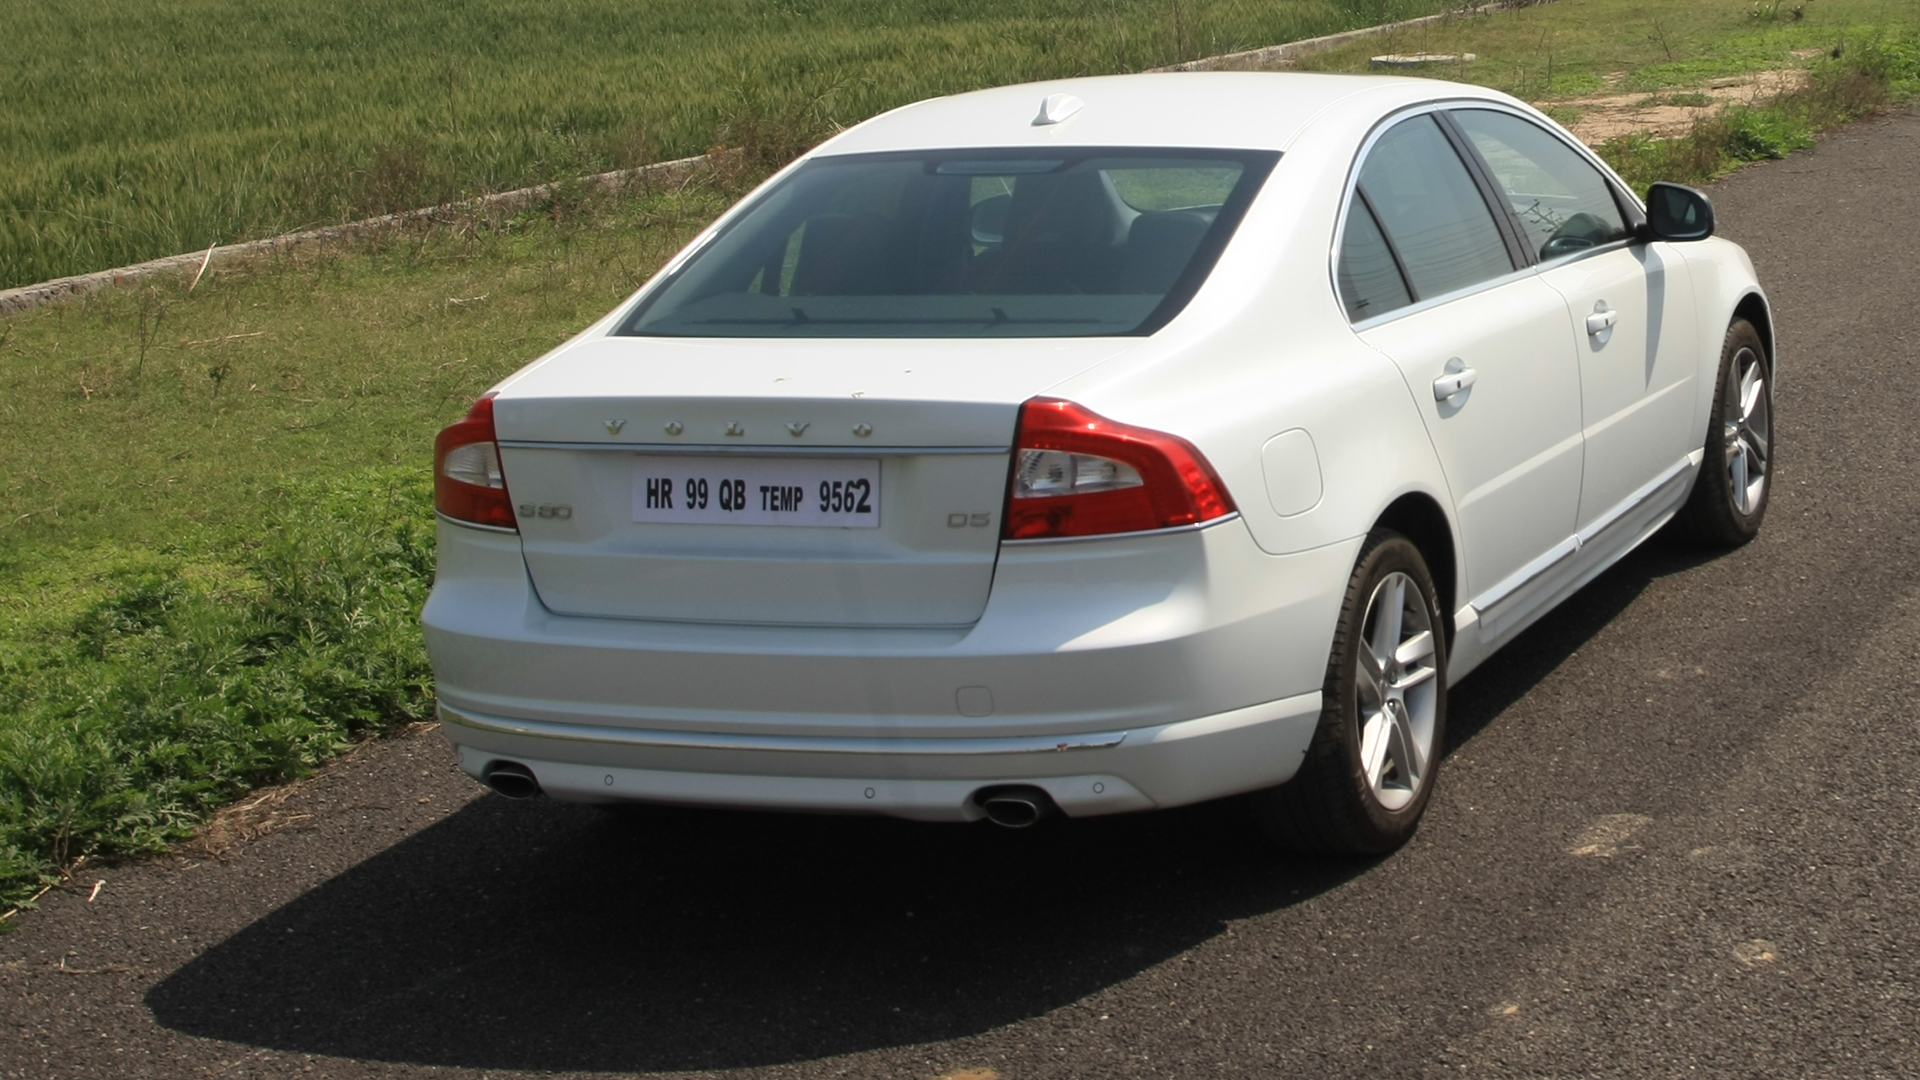 Volvo S80 2014 D5 - Price, Mileage, Reviews, Specification, Gallery